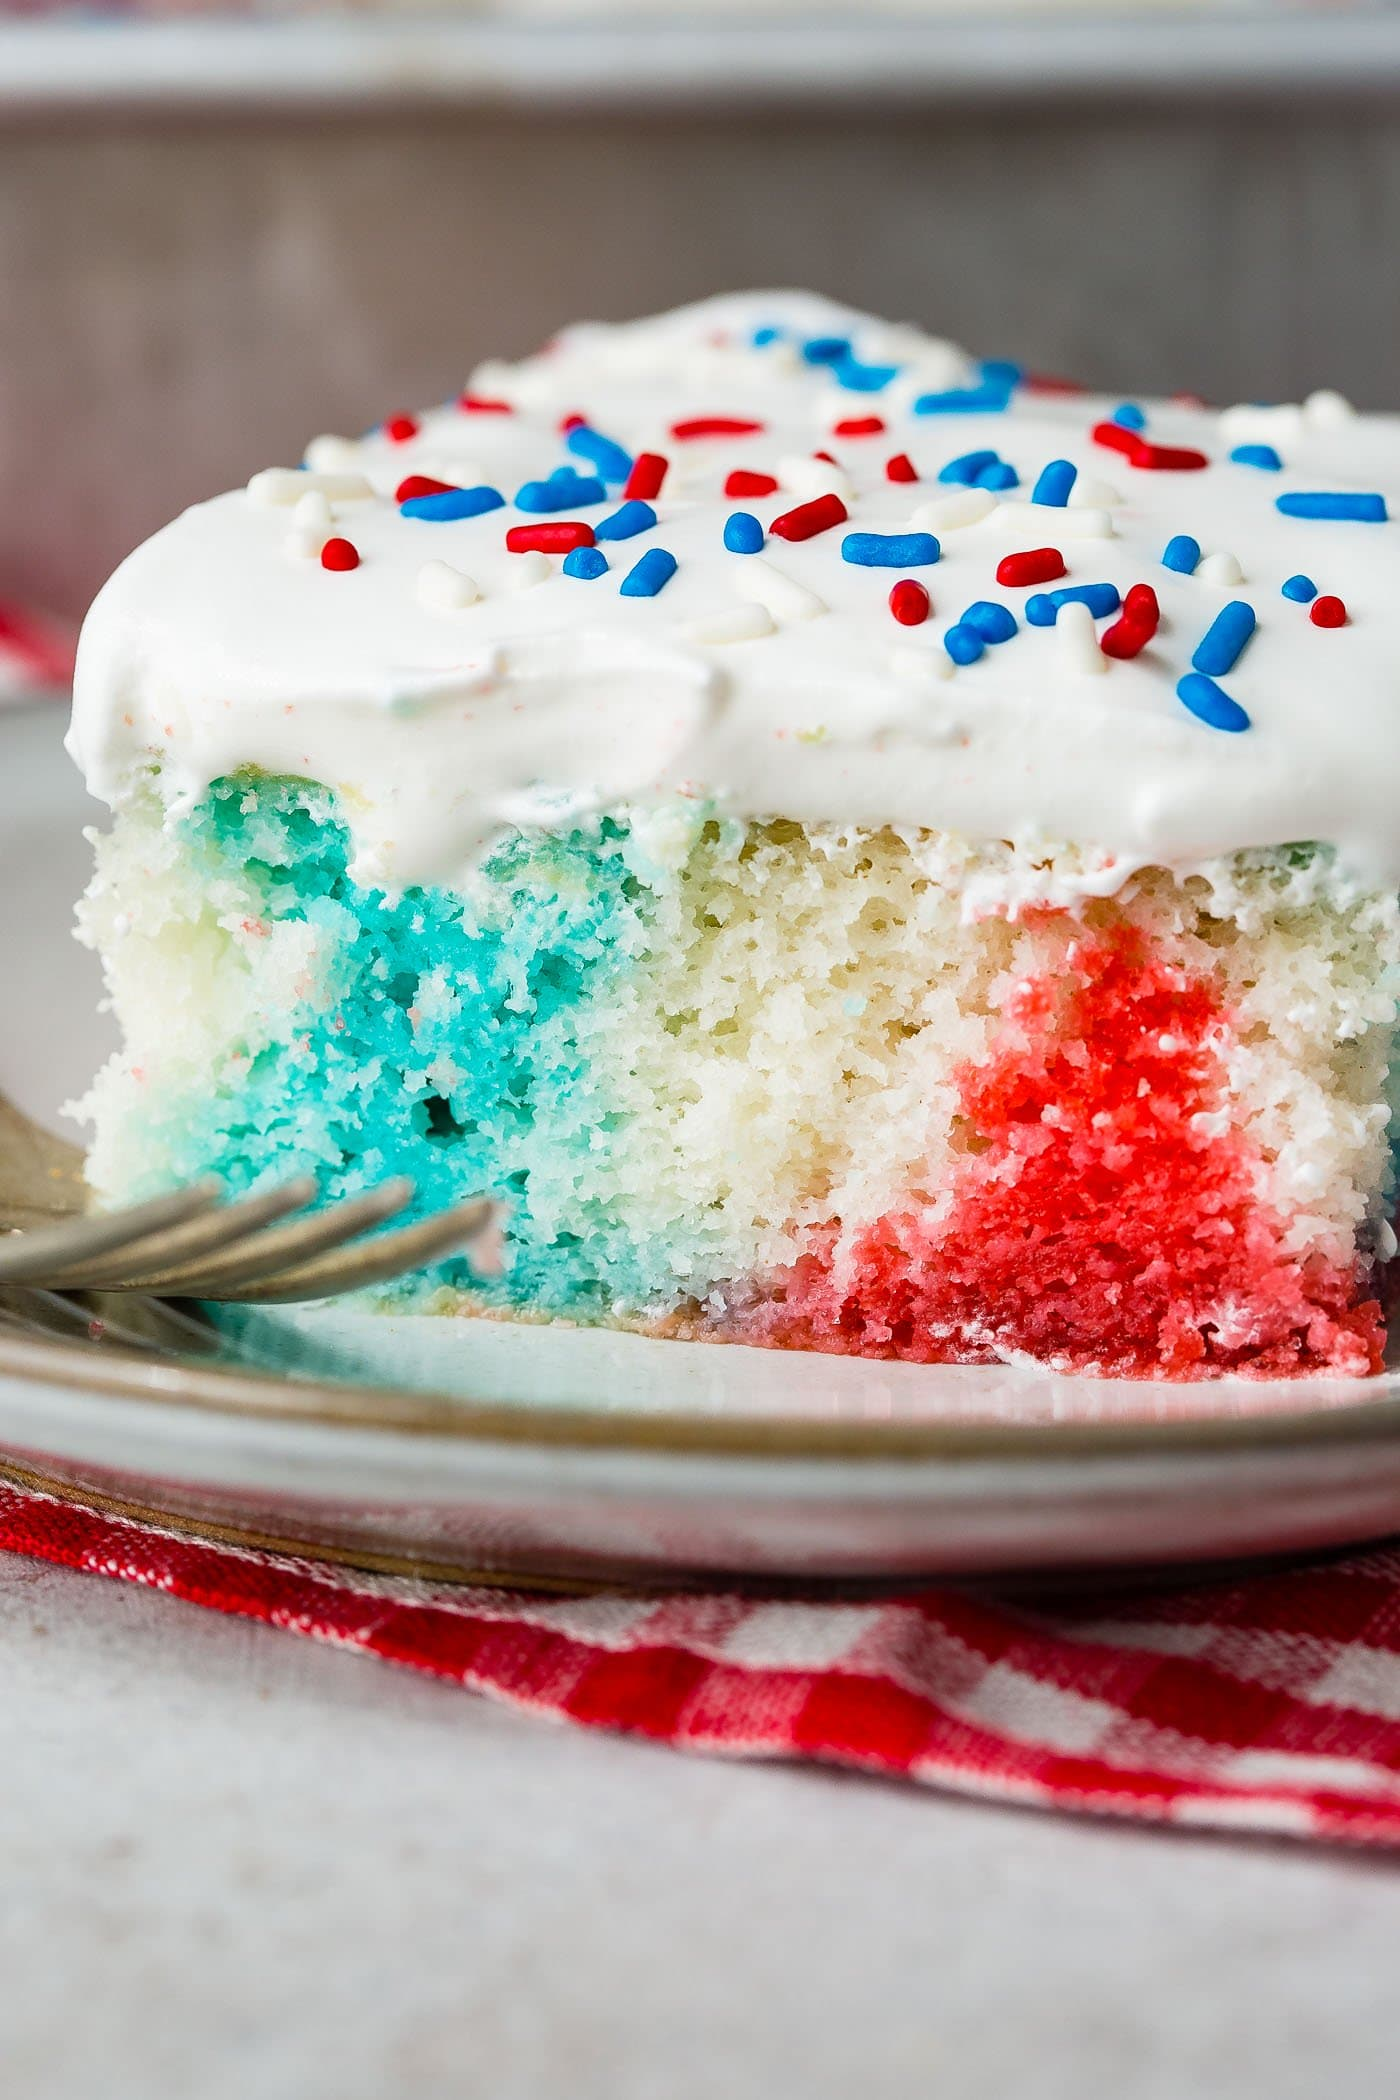 A piece of poke cake with a fork resting next to the cake. The cake is red, white and blue and is topped with white frosting and red, white and blue sprinkles. It is sitting on a red and white checked napkin.